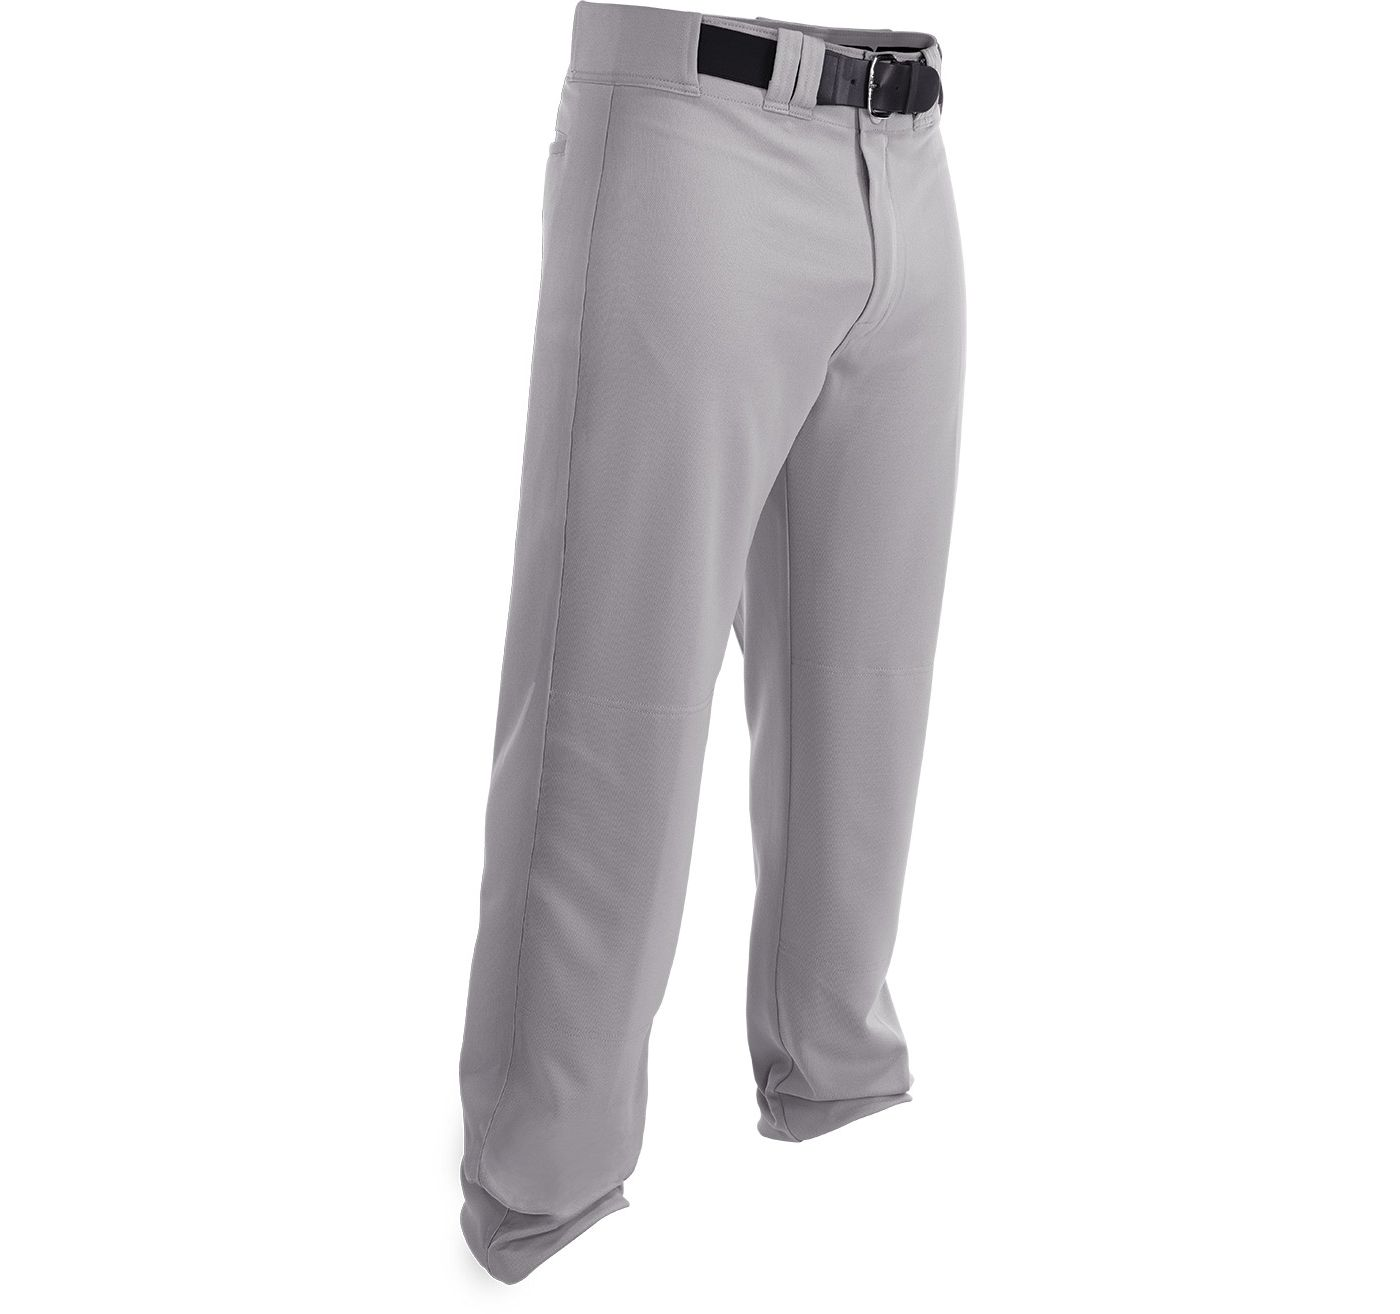 Easton Men's Rival 2 Baseball Pants